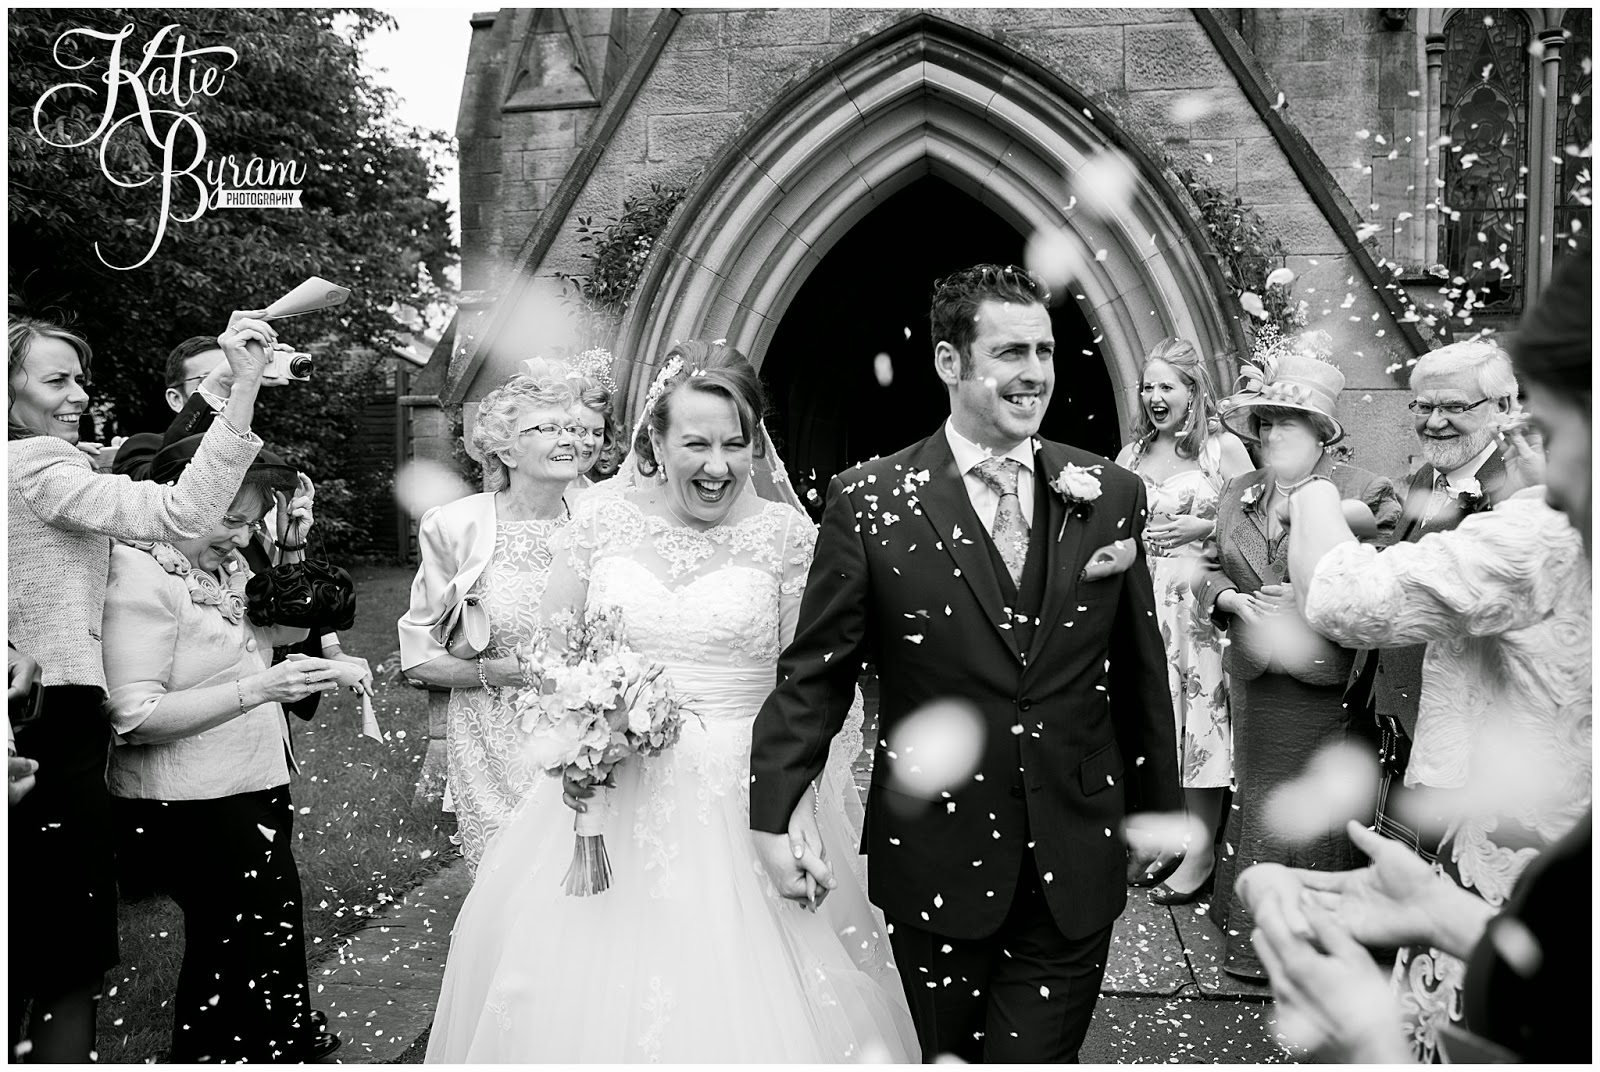 black and white wedding photograph, confetti shot, minsteracres wedding, lord crewe arms wedding, dog at wedding, scoops and smiles, katie byram photography, ice cream van hire newcastle, newcastle wedding photography, relaxed wedding photography, quirky, 50